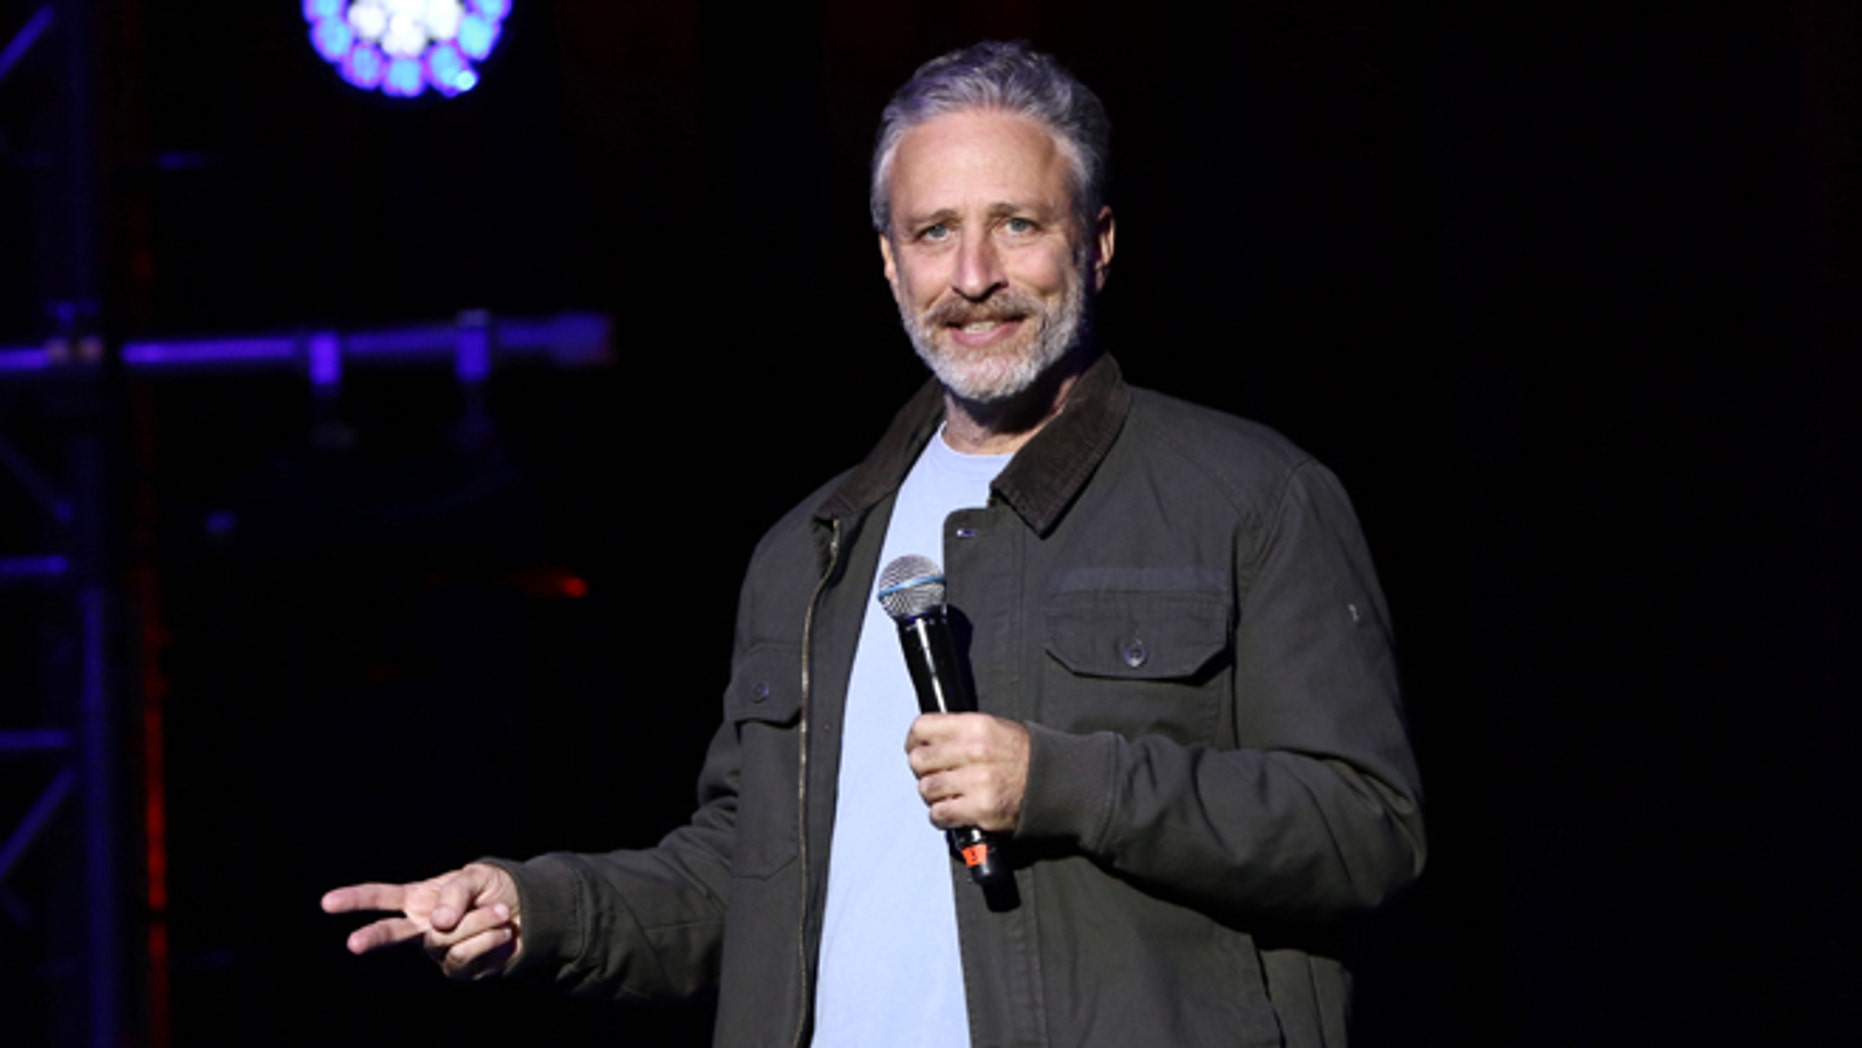 Nov. 10, 2015. Jon Stewart performs at the 9th Annual Stand Up For Heroes event, in New York.